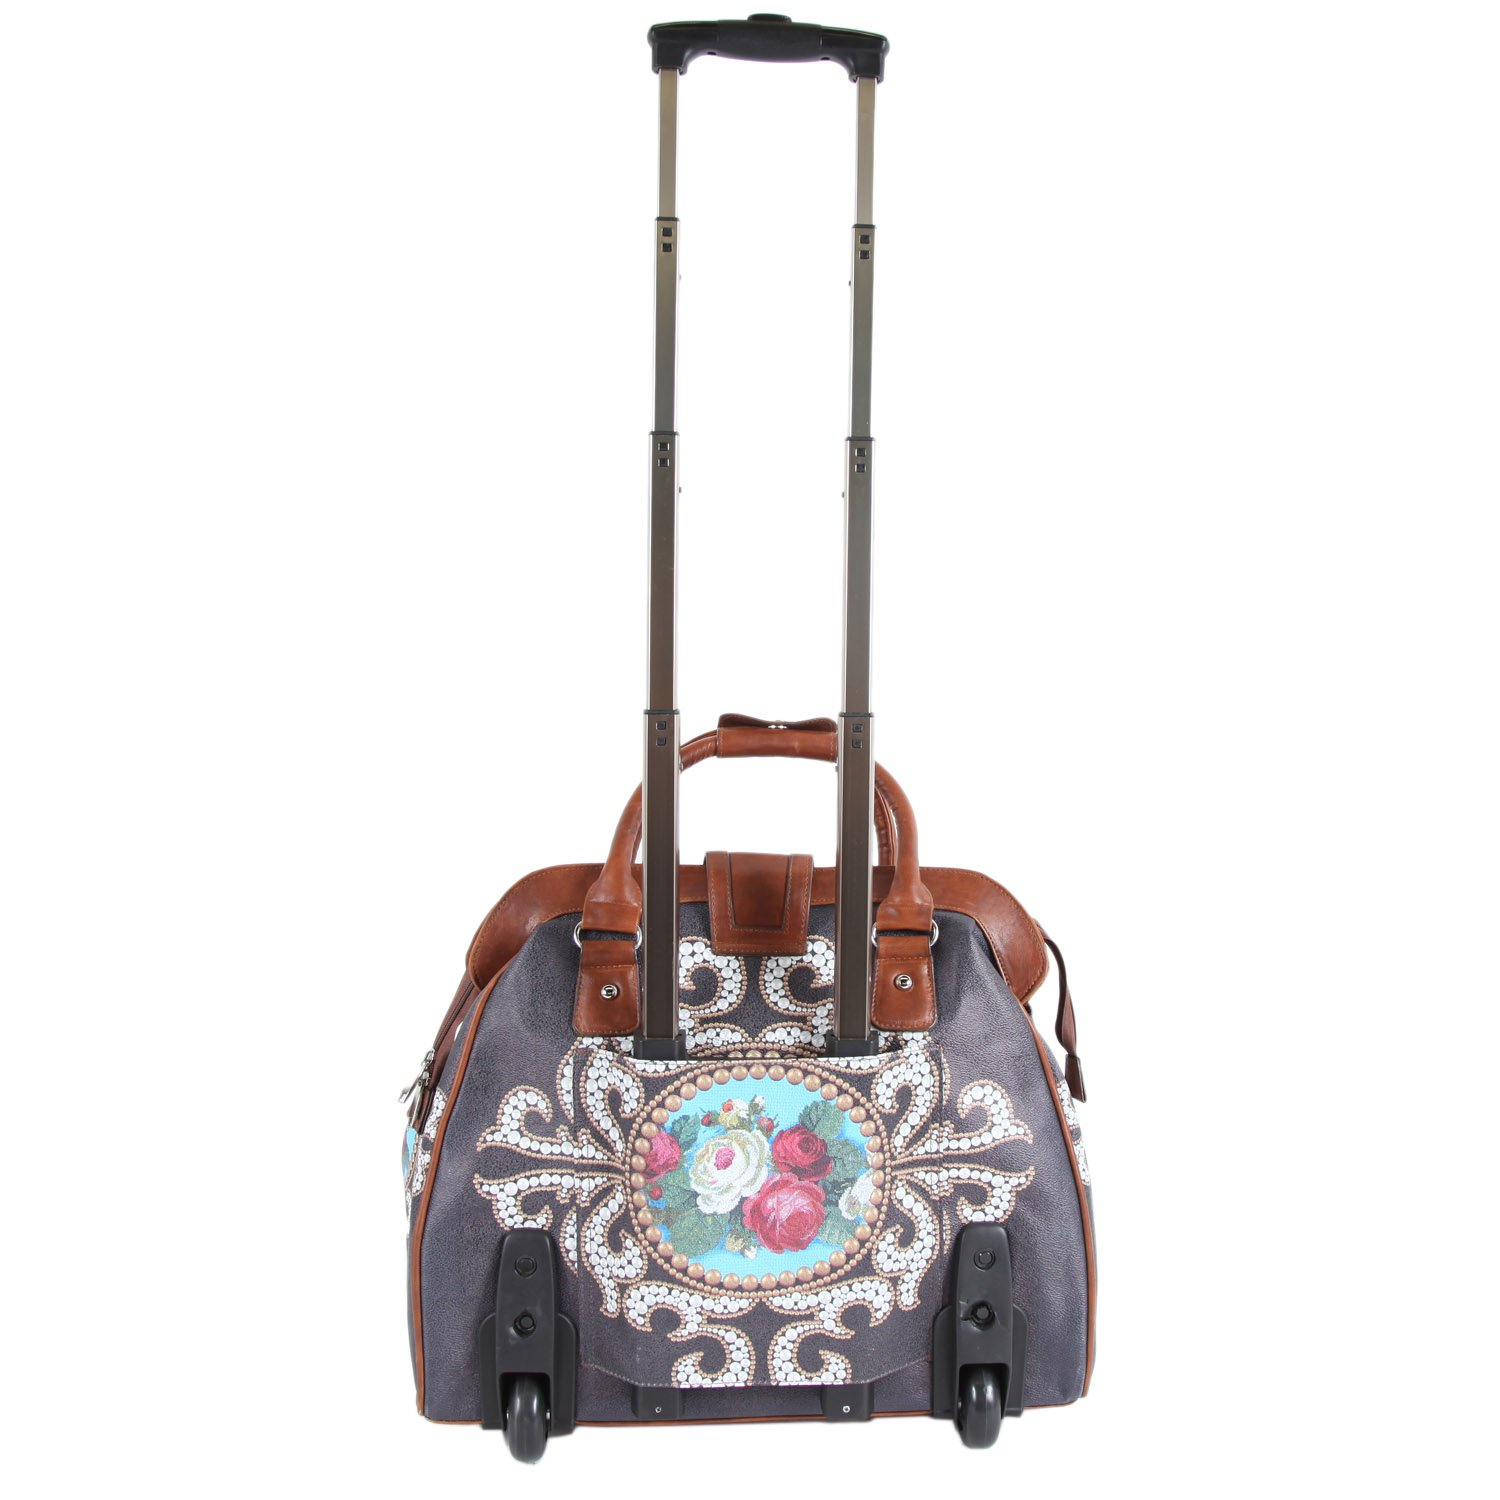 Nicole Lee Cheri Rolling Business Tote, Rose Pearl, One Size by Nicole Lee (Image #2)